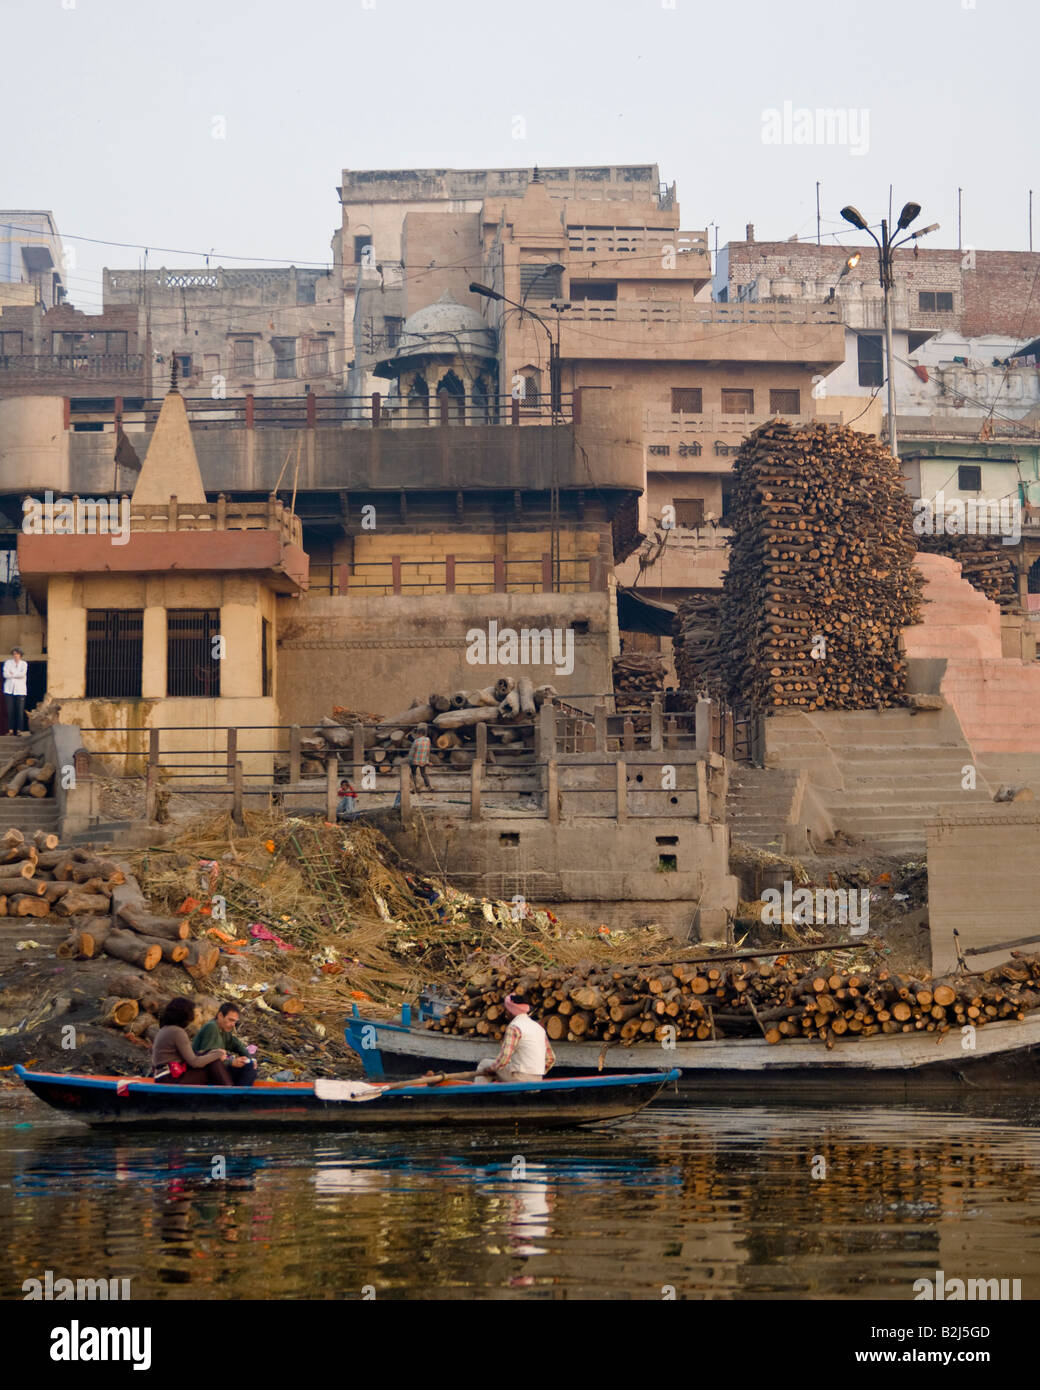 Piles of wood used for open air cremations at the ancient city of Varanasi on the banks of the river Ganges, India. Stock Photo